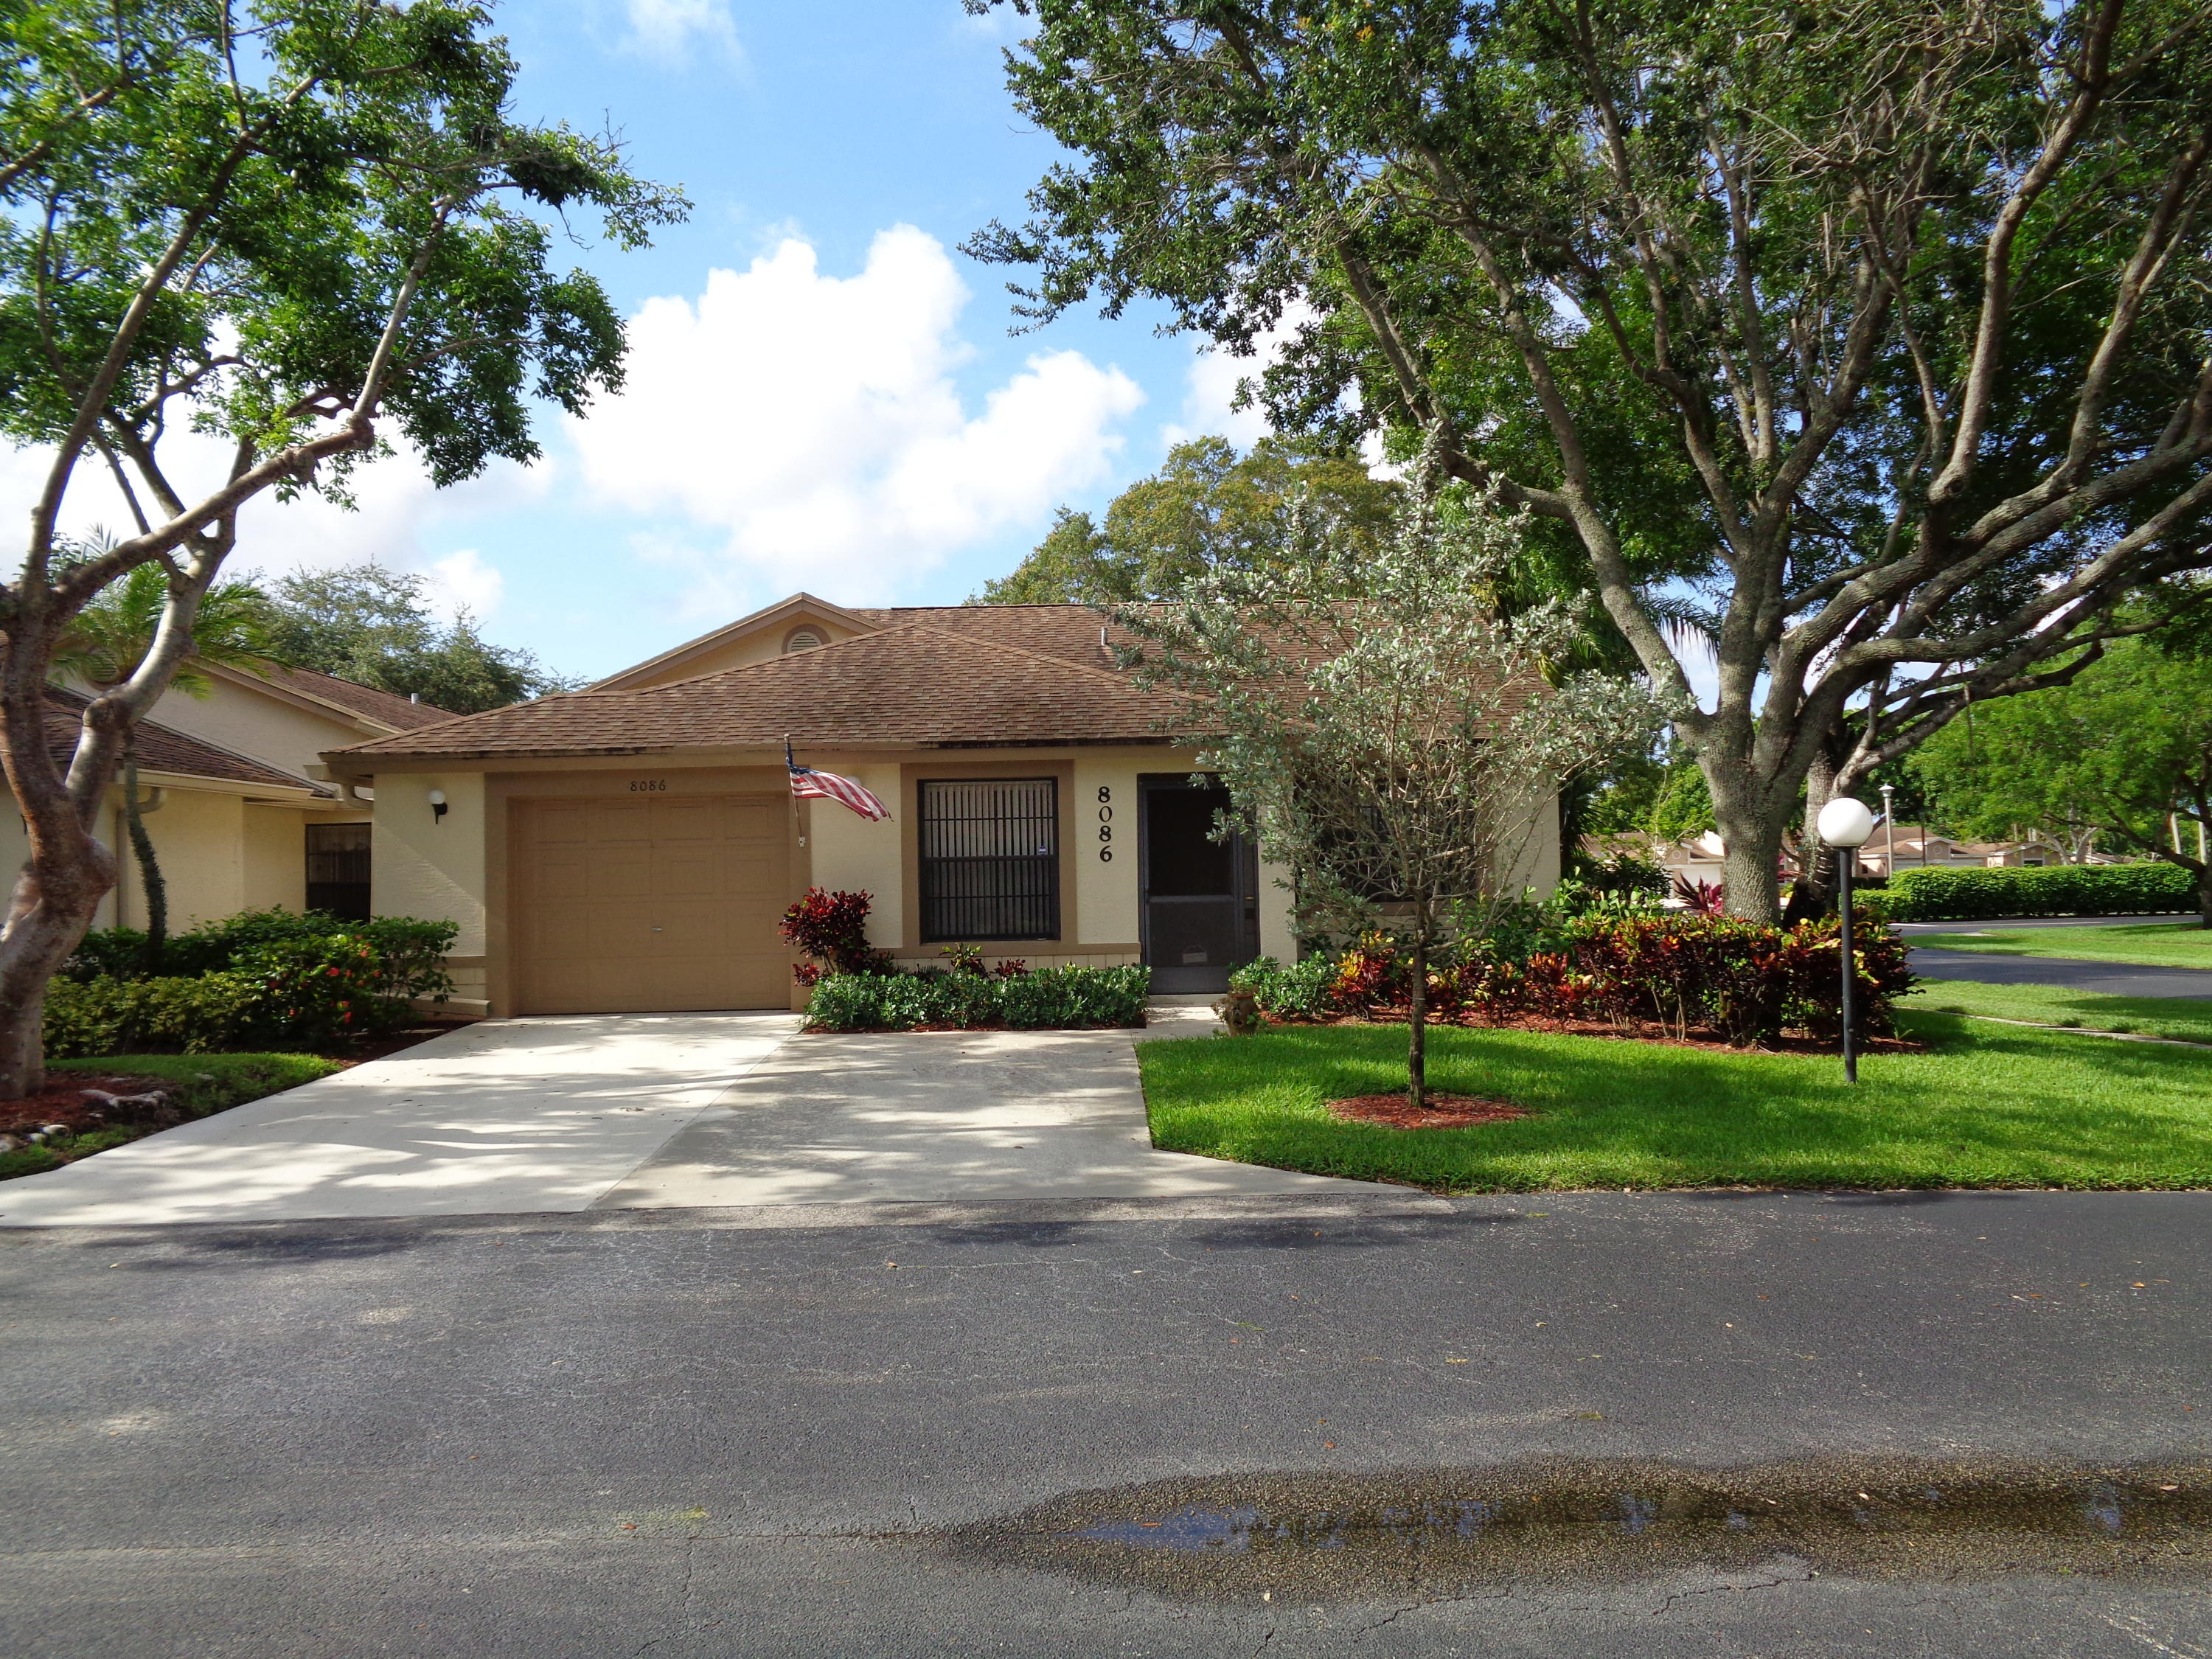 Home for sale in Whisper Walk Summerwinds Boca Raton Florida